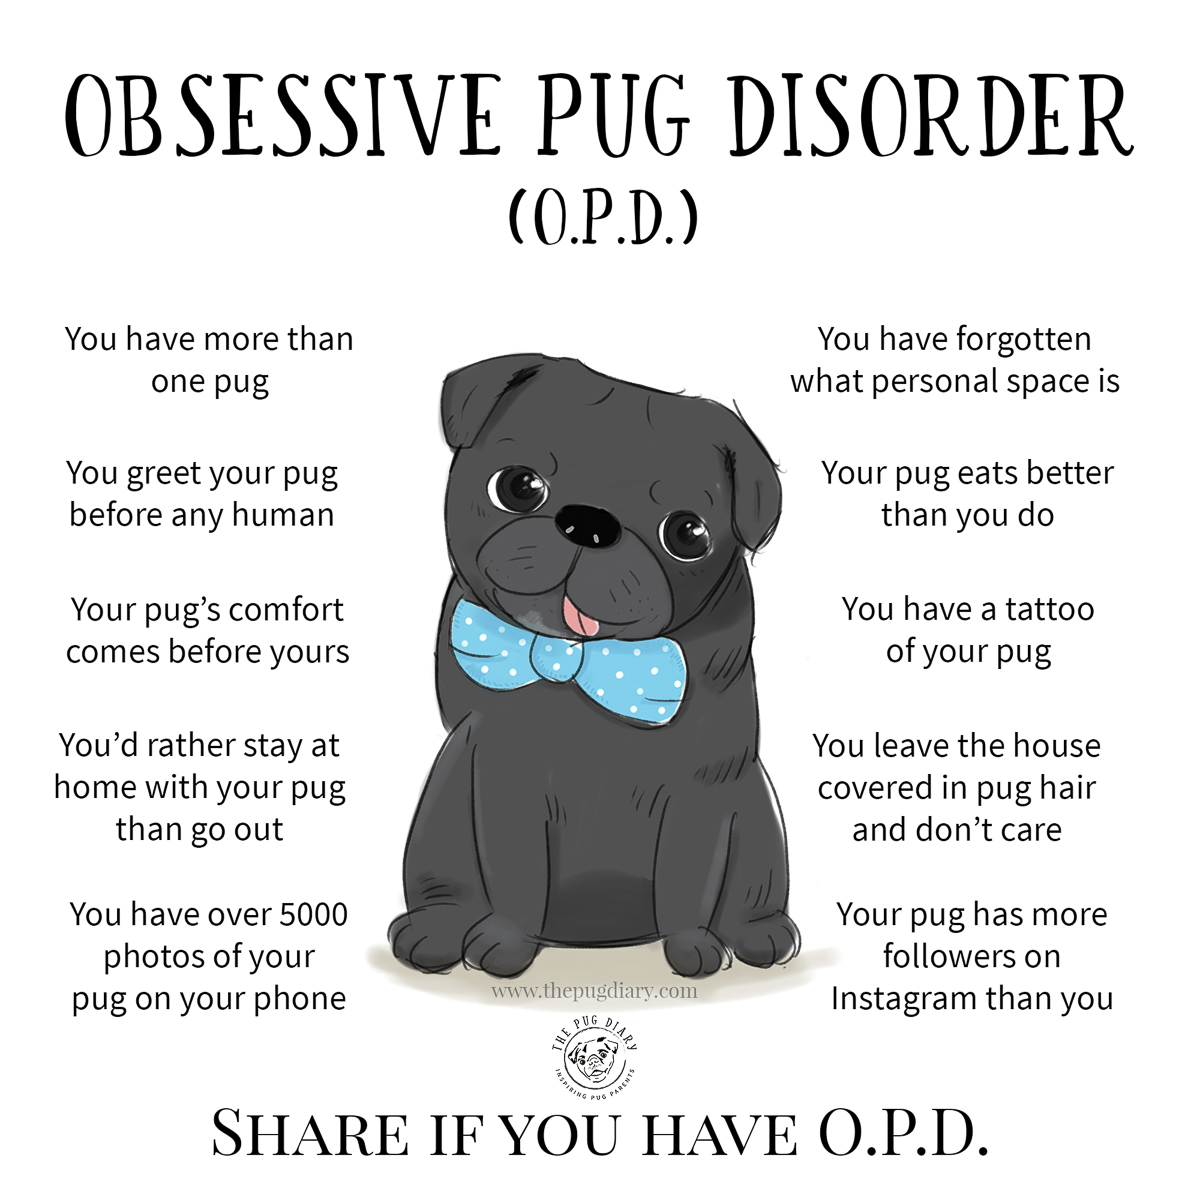 10 Signs You Suffer From Obsessive Pug Disorder | www.thepugdiary.com